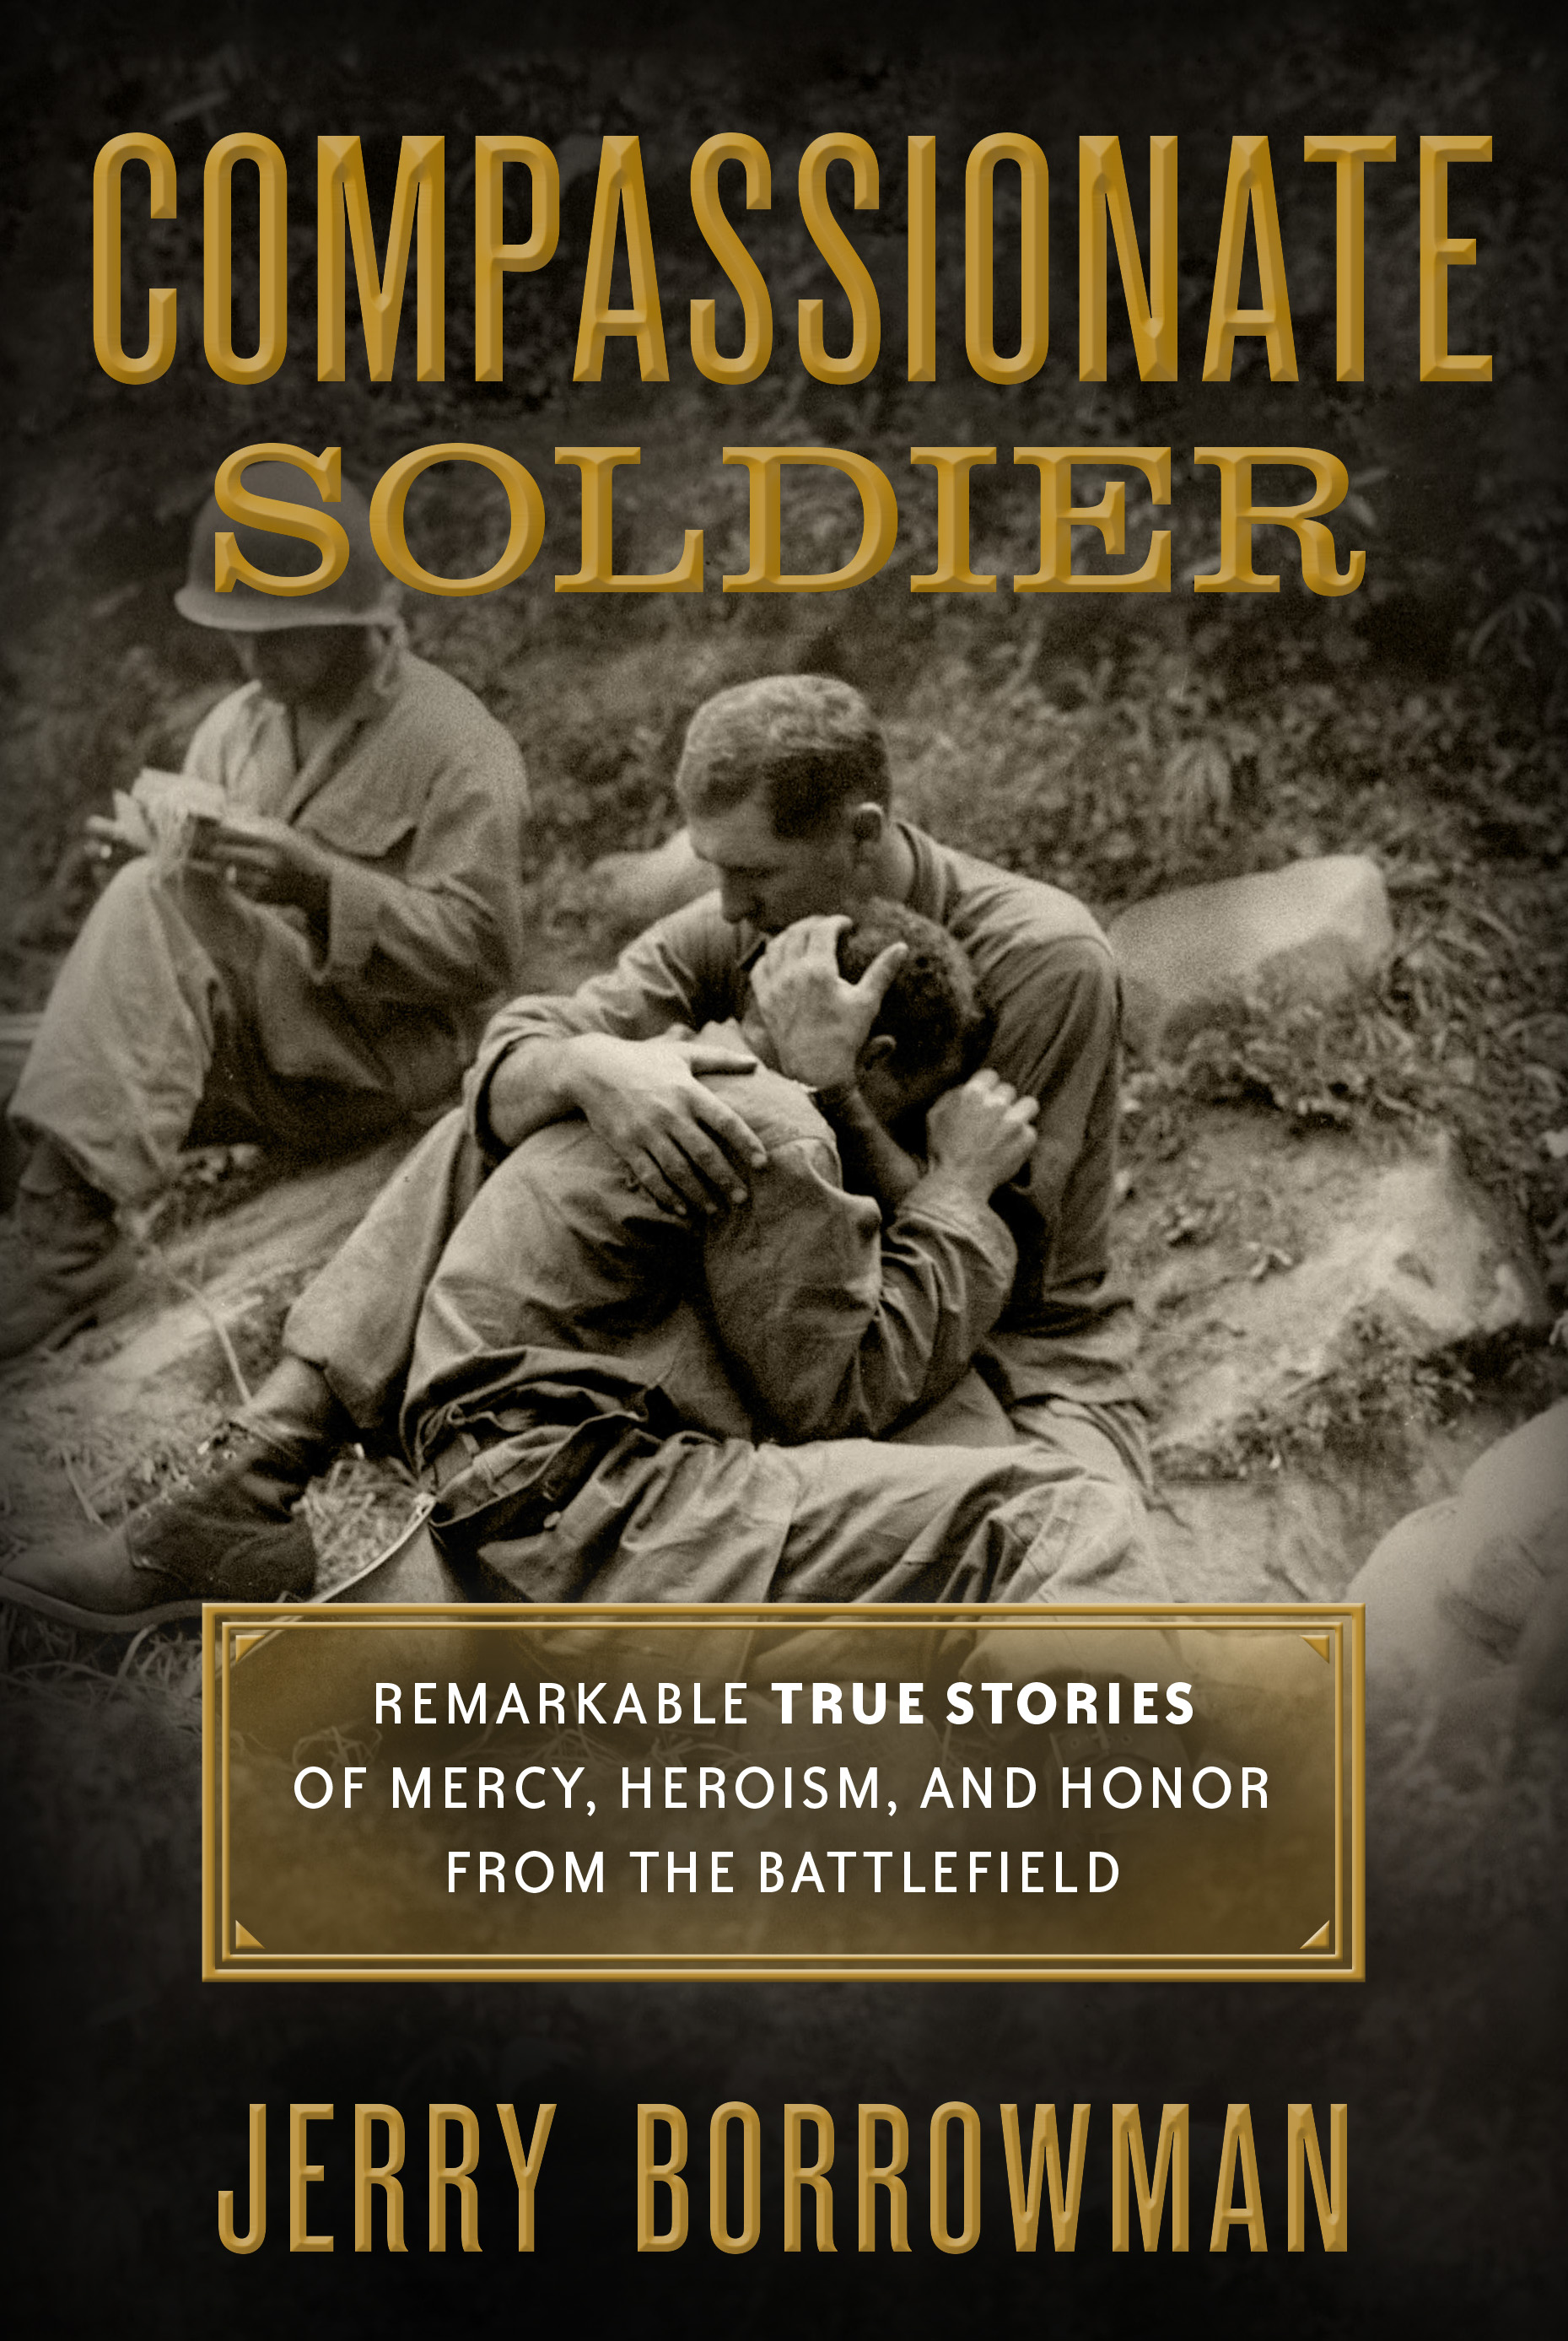 Compassionate Soldier Remarkable True Stories of Mercy, Heroism, and Honor from the Battlefield